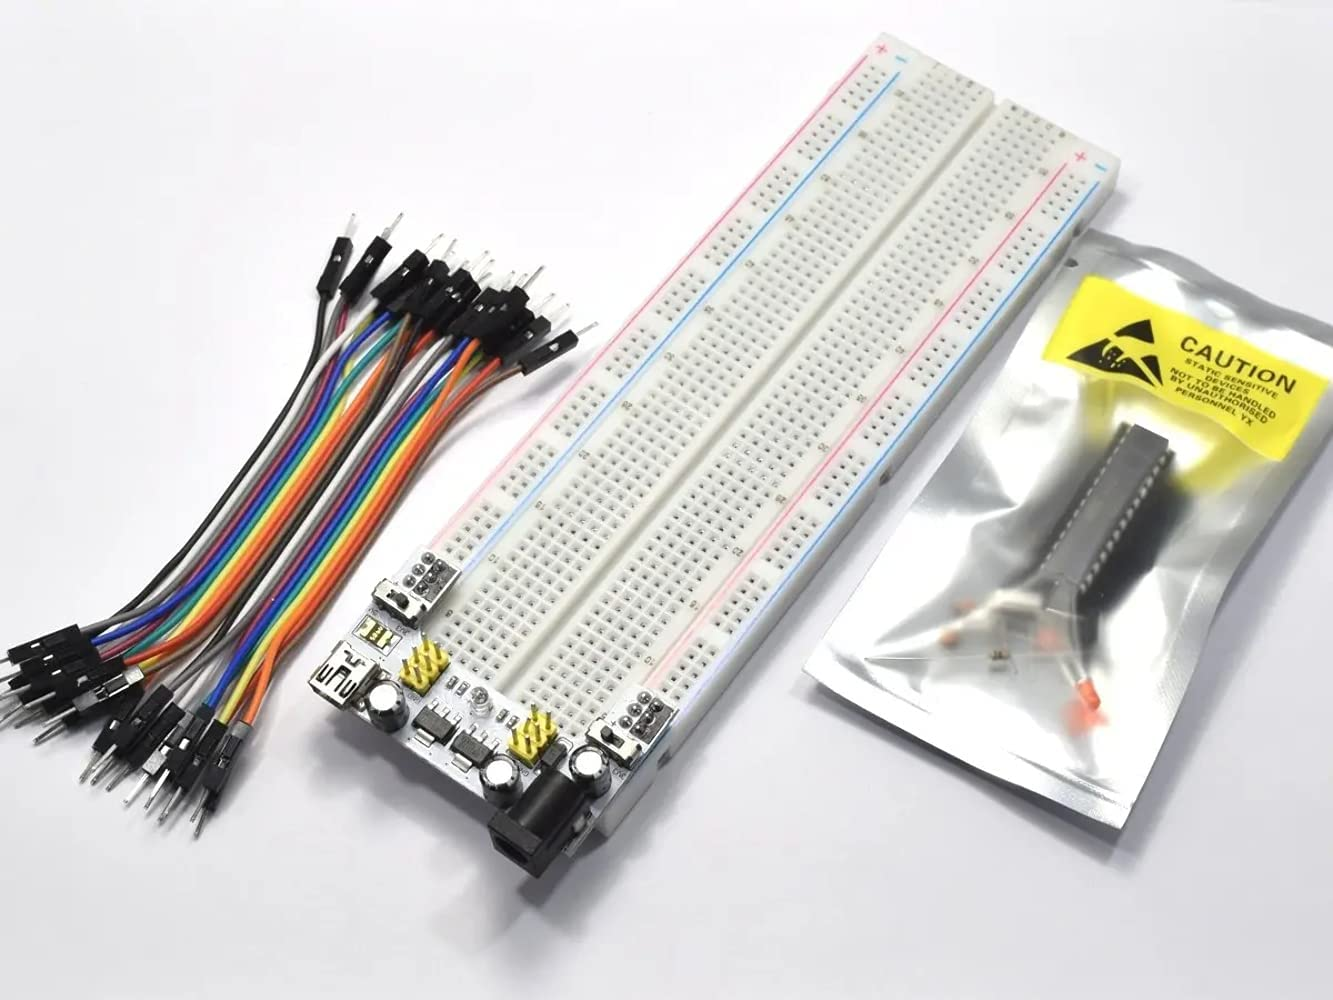 CANADUINO Parts Kit with Atmega328P-PU Arduino-On-A-Breadboa for Special Baltimore Mall price a limited time